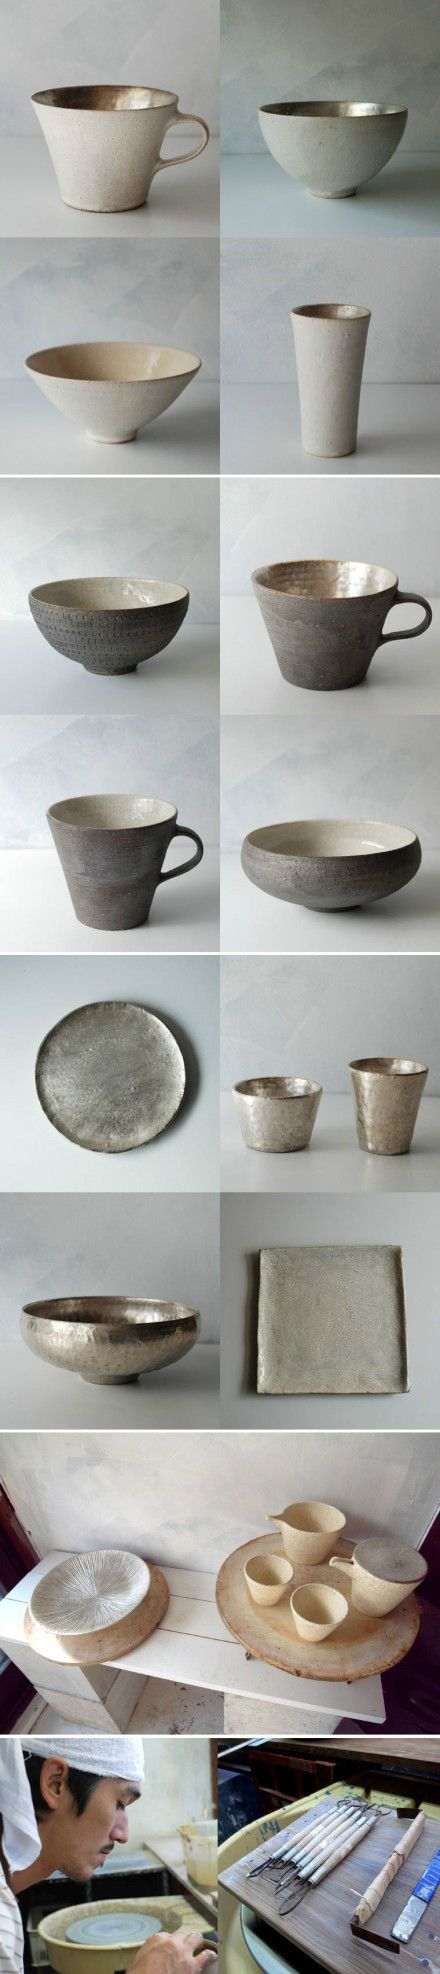 Be it bowls, vases or art, ceramics are in trend for 2015. Japanese Ceramics by barefootstyling #Ceramics